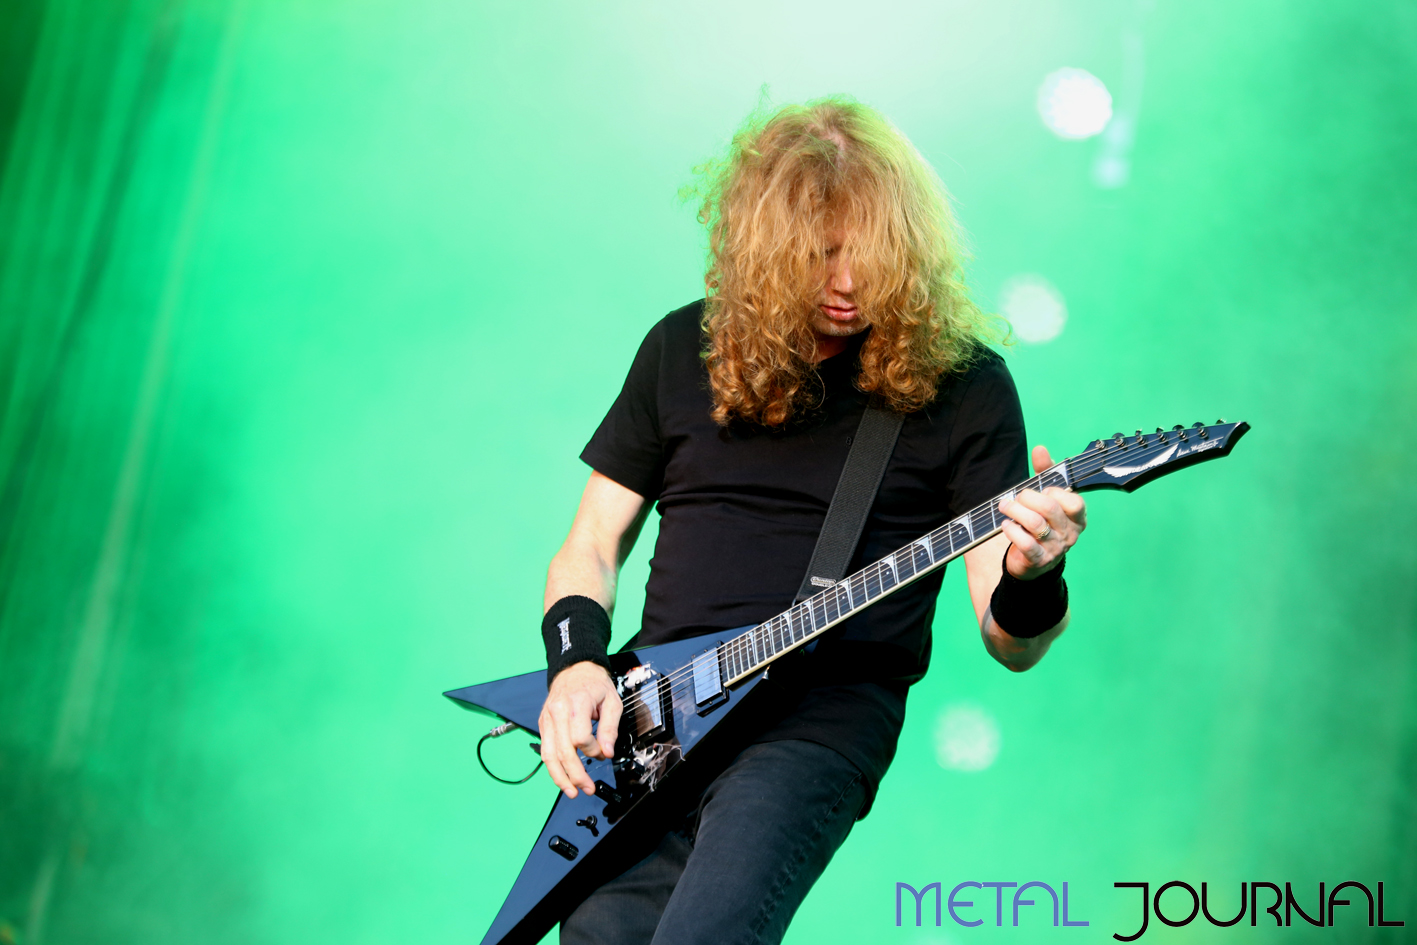 megadeth rock fest 18 - metal journal pic 4